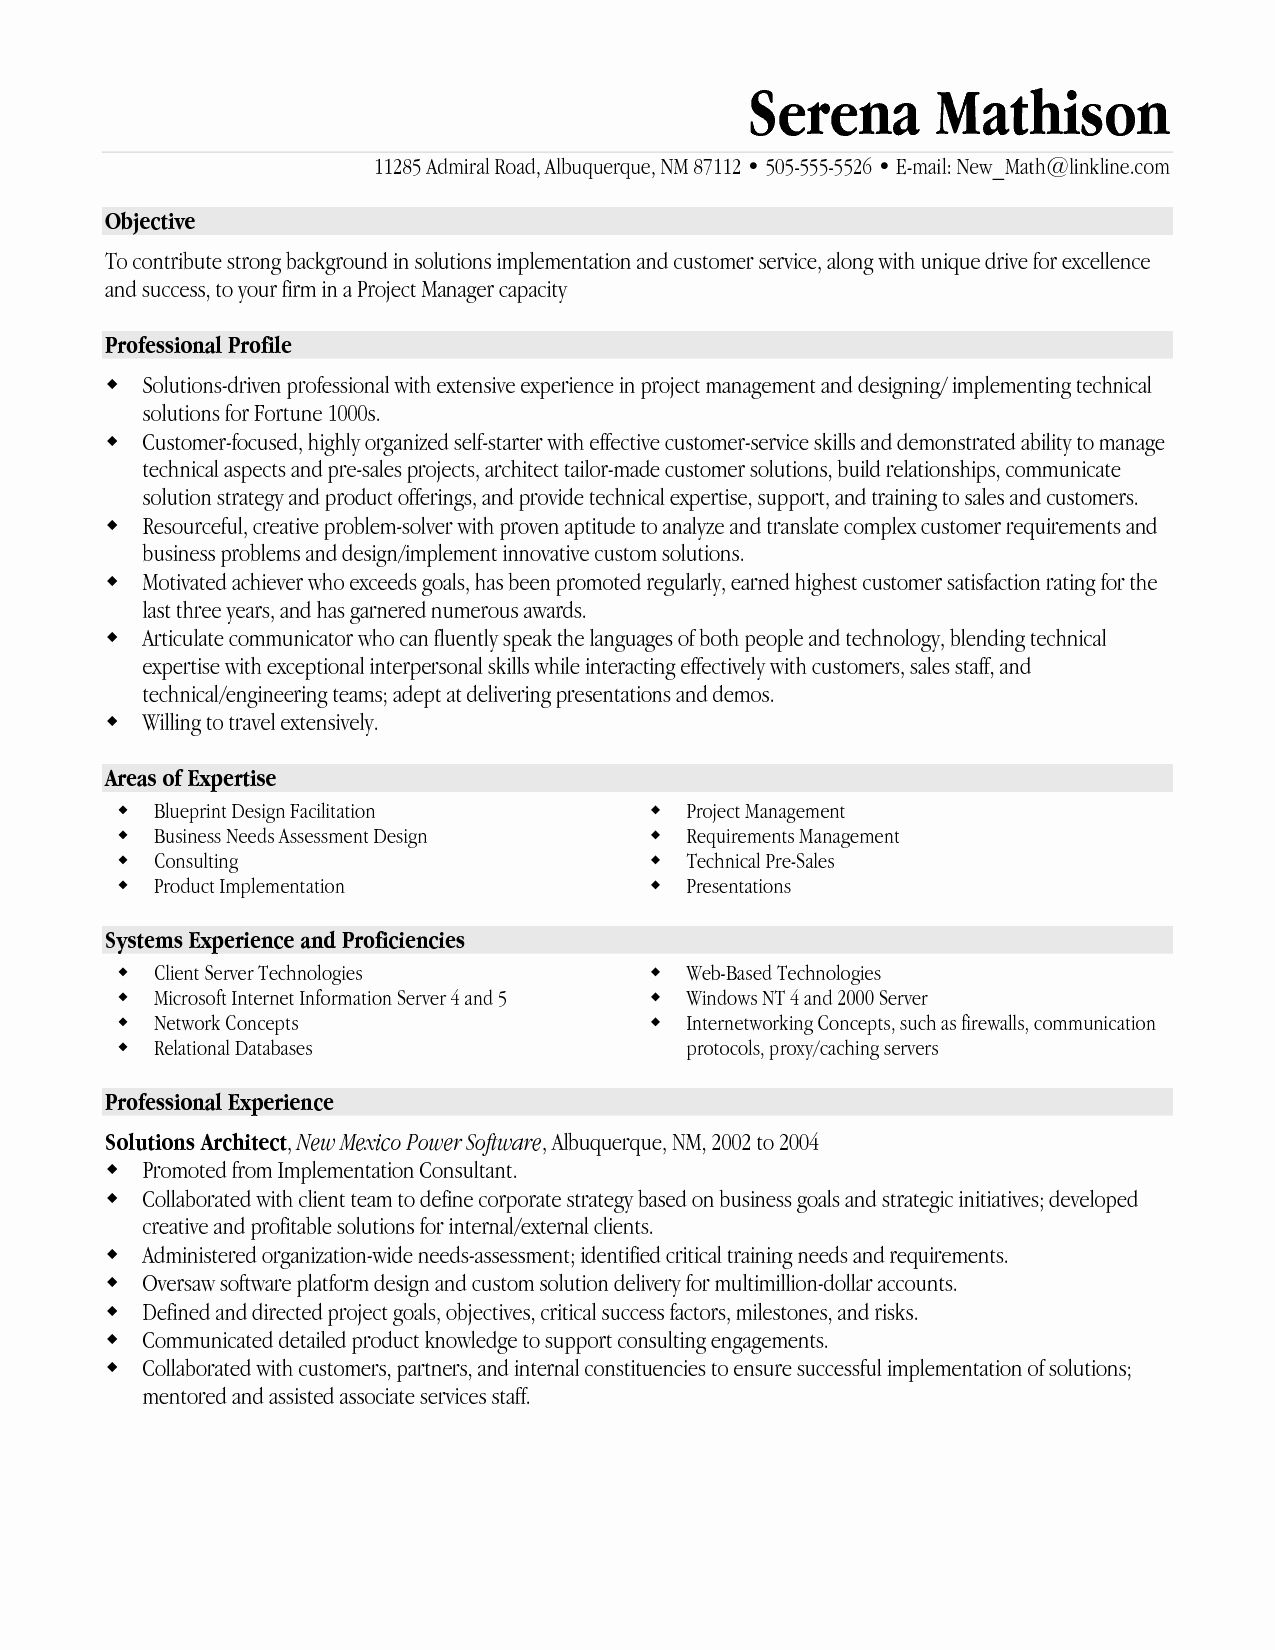 Project Manager Resume Pdf New Resume Templates Project Manager Project Management Resume Resumes In 2020 Project Manager Resume